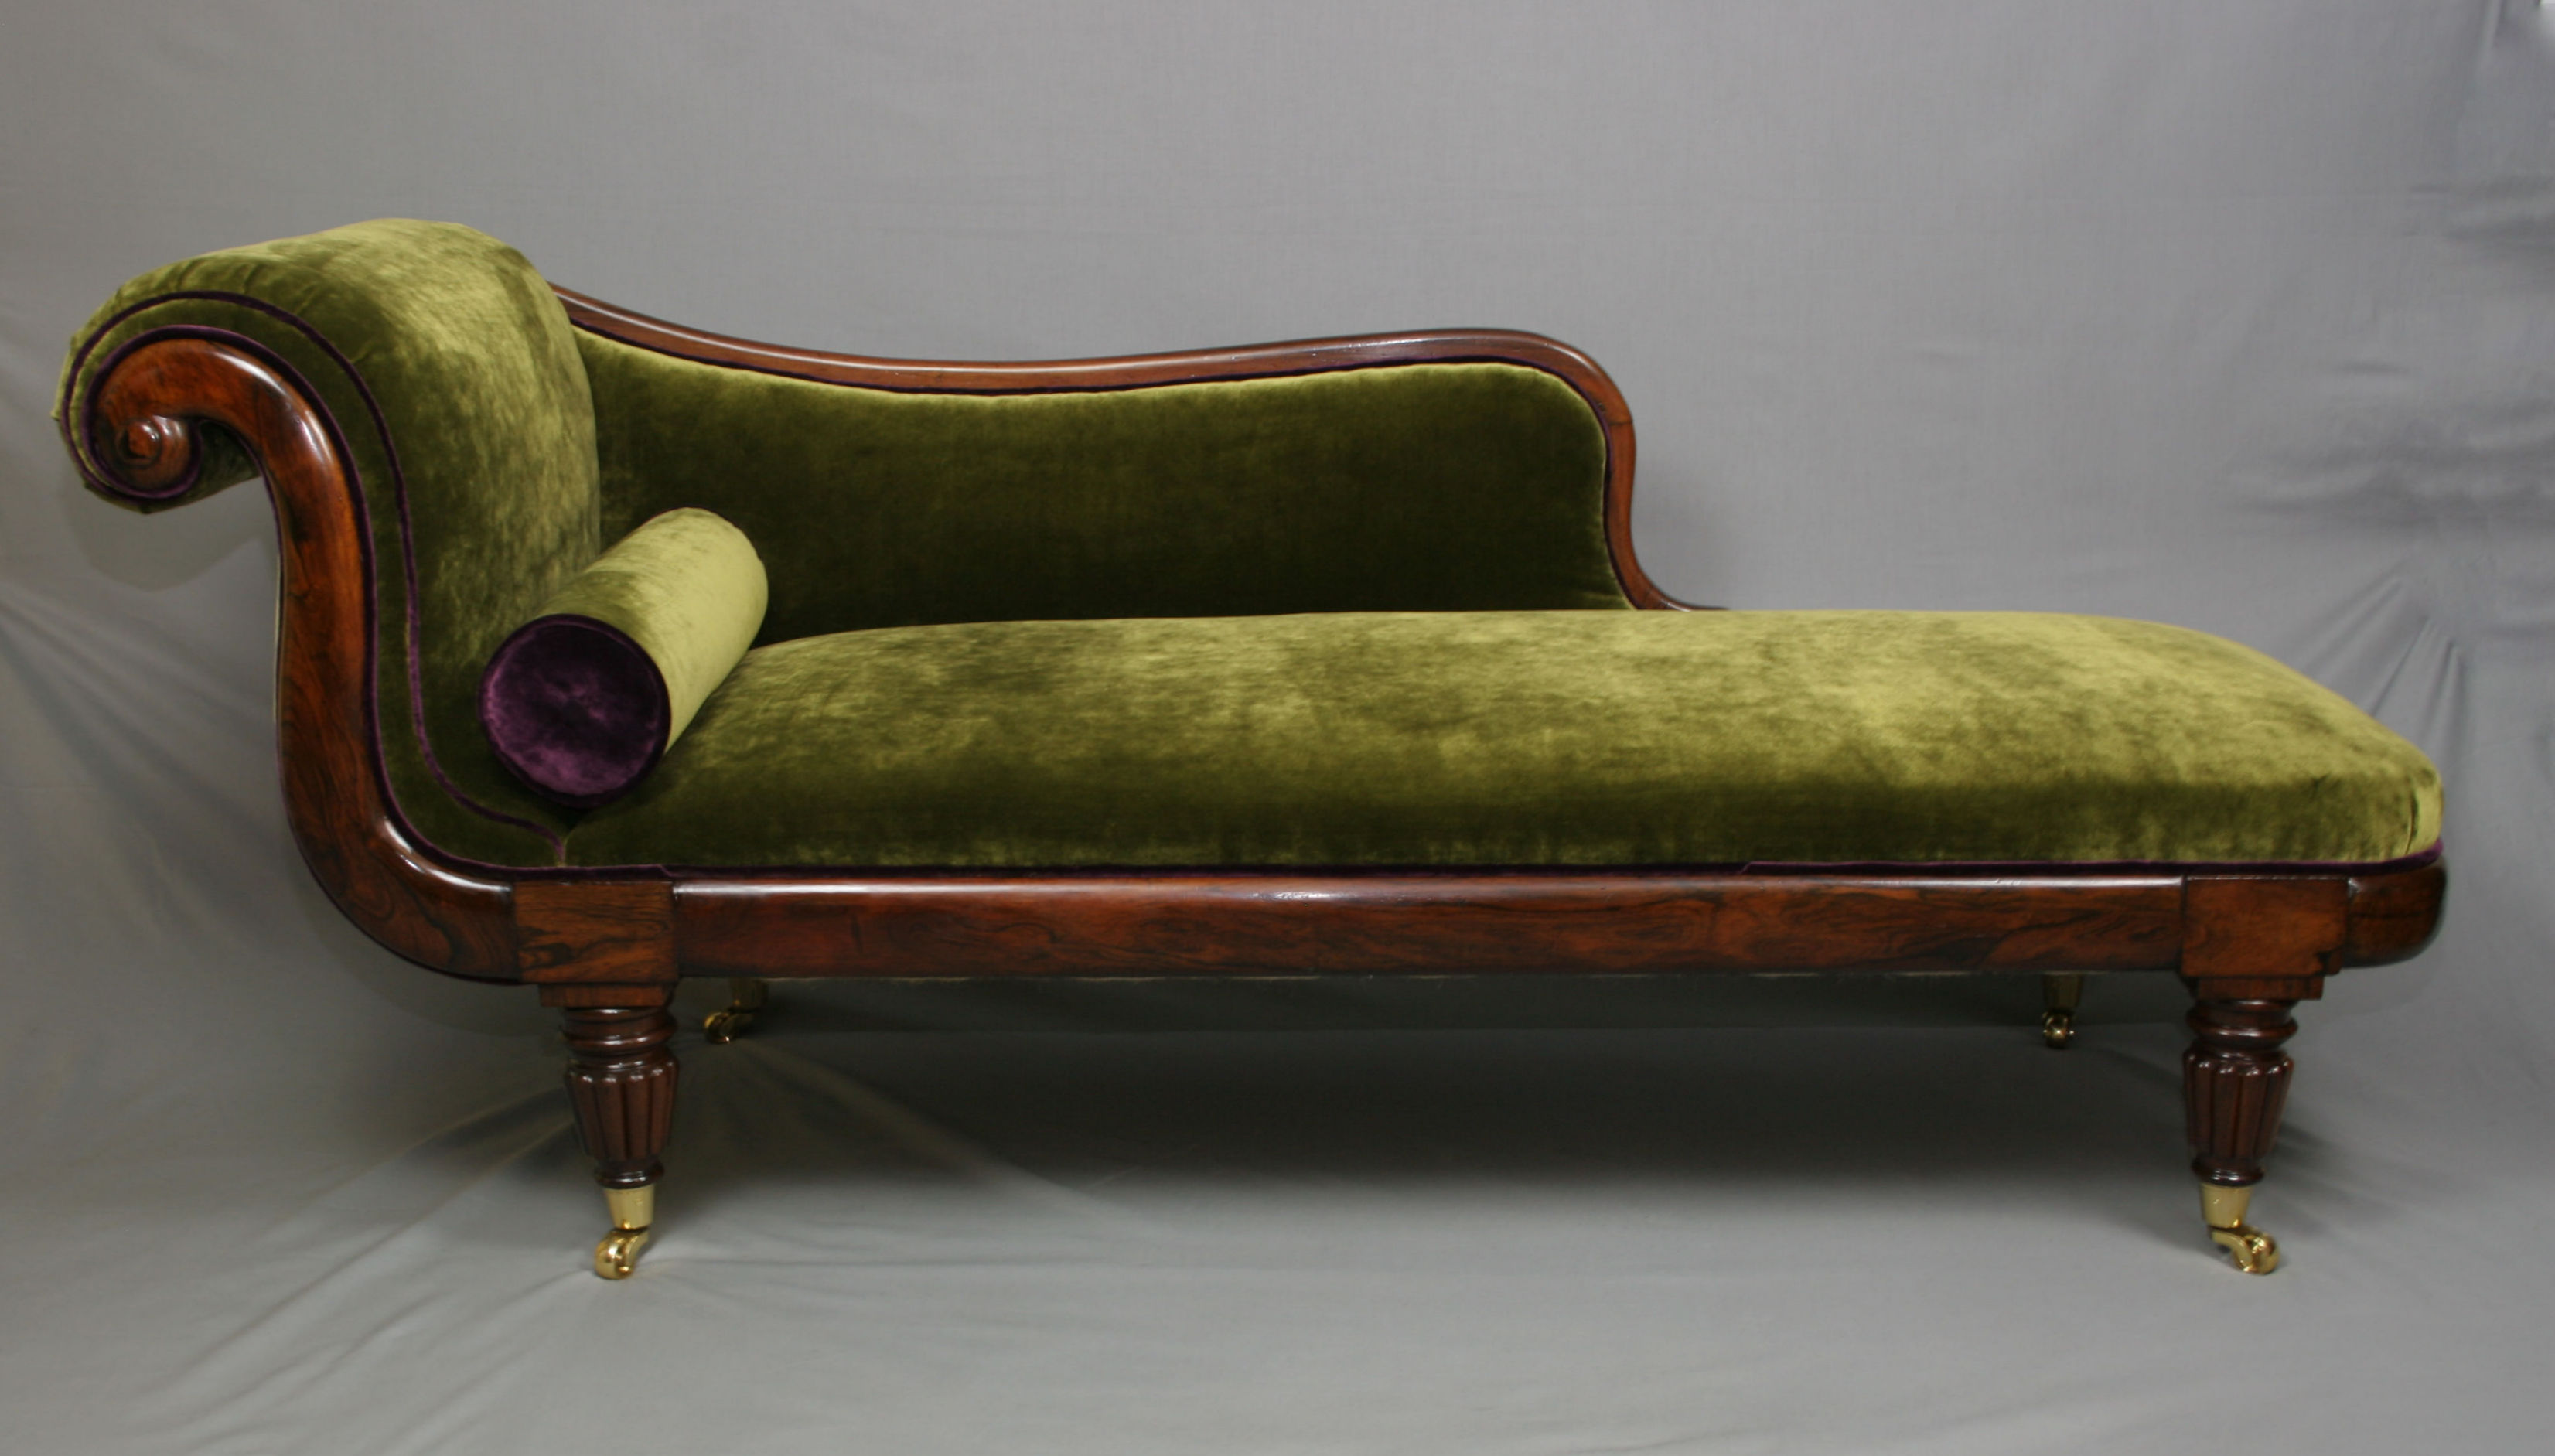 Regency Period Brazilian Rosewood Chaise Lounge ... : chaise lounge antique - Sectionals, Sofas & Couches